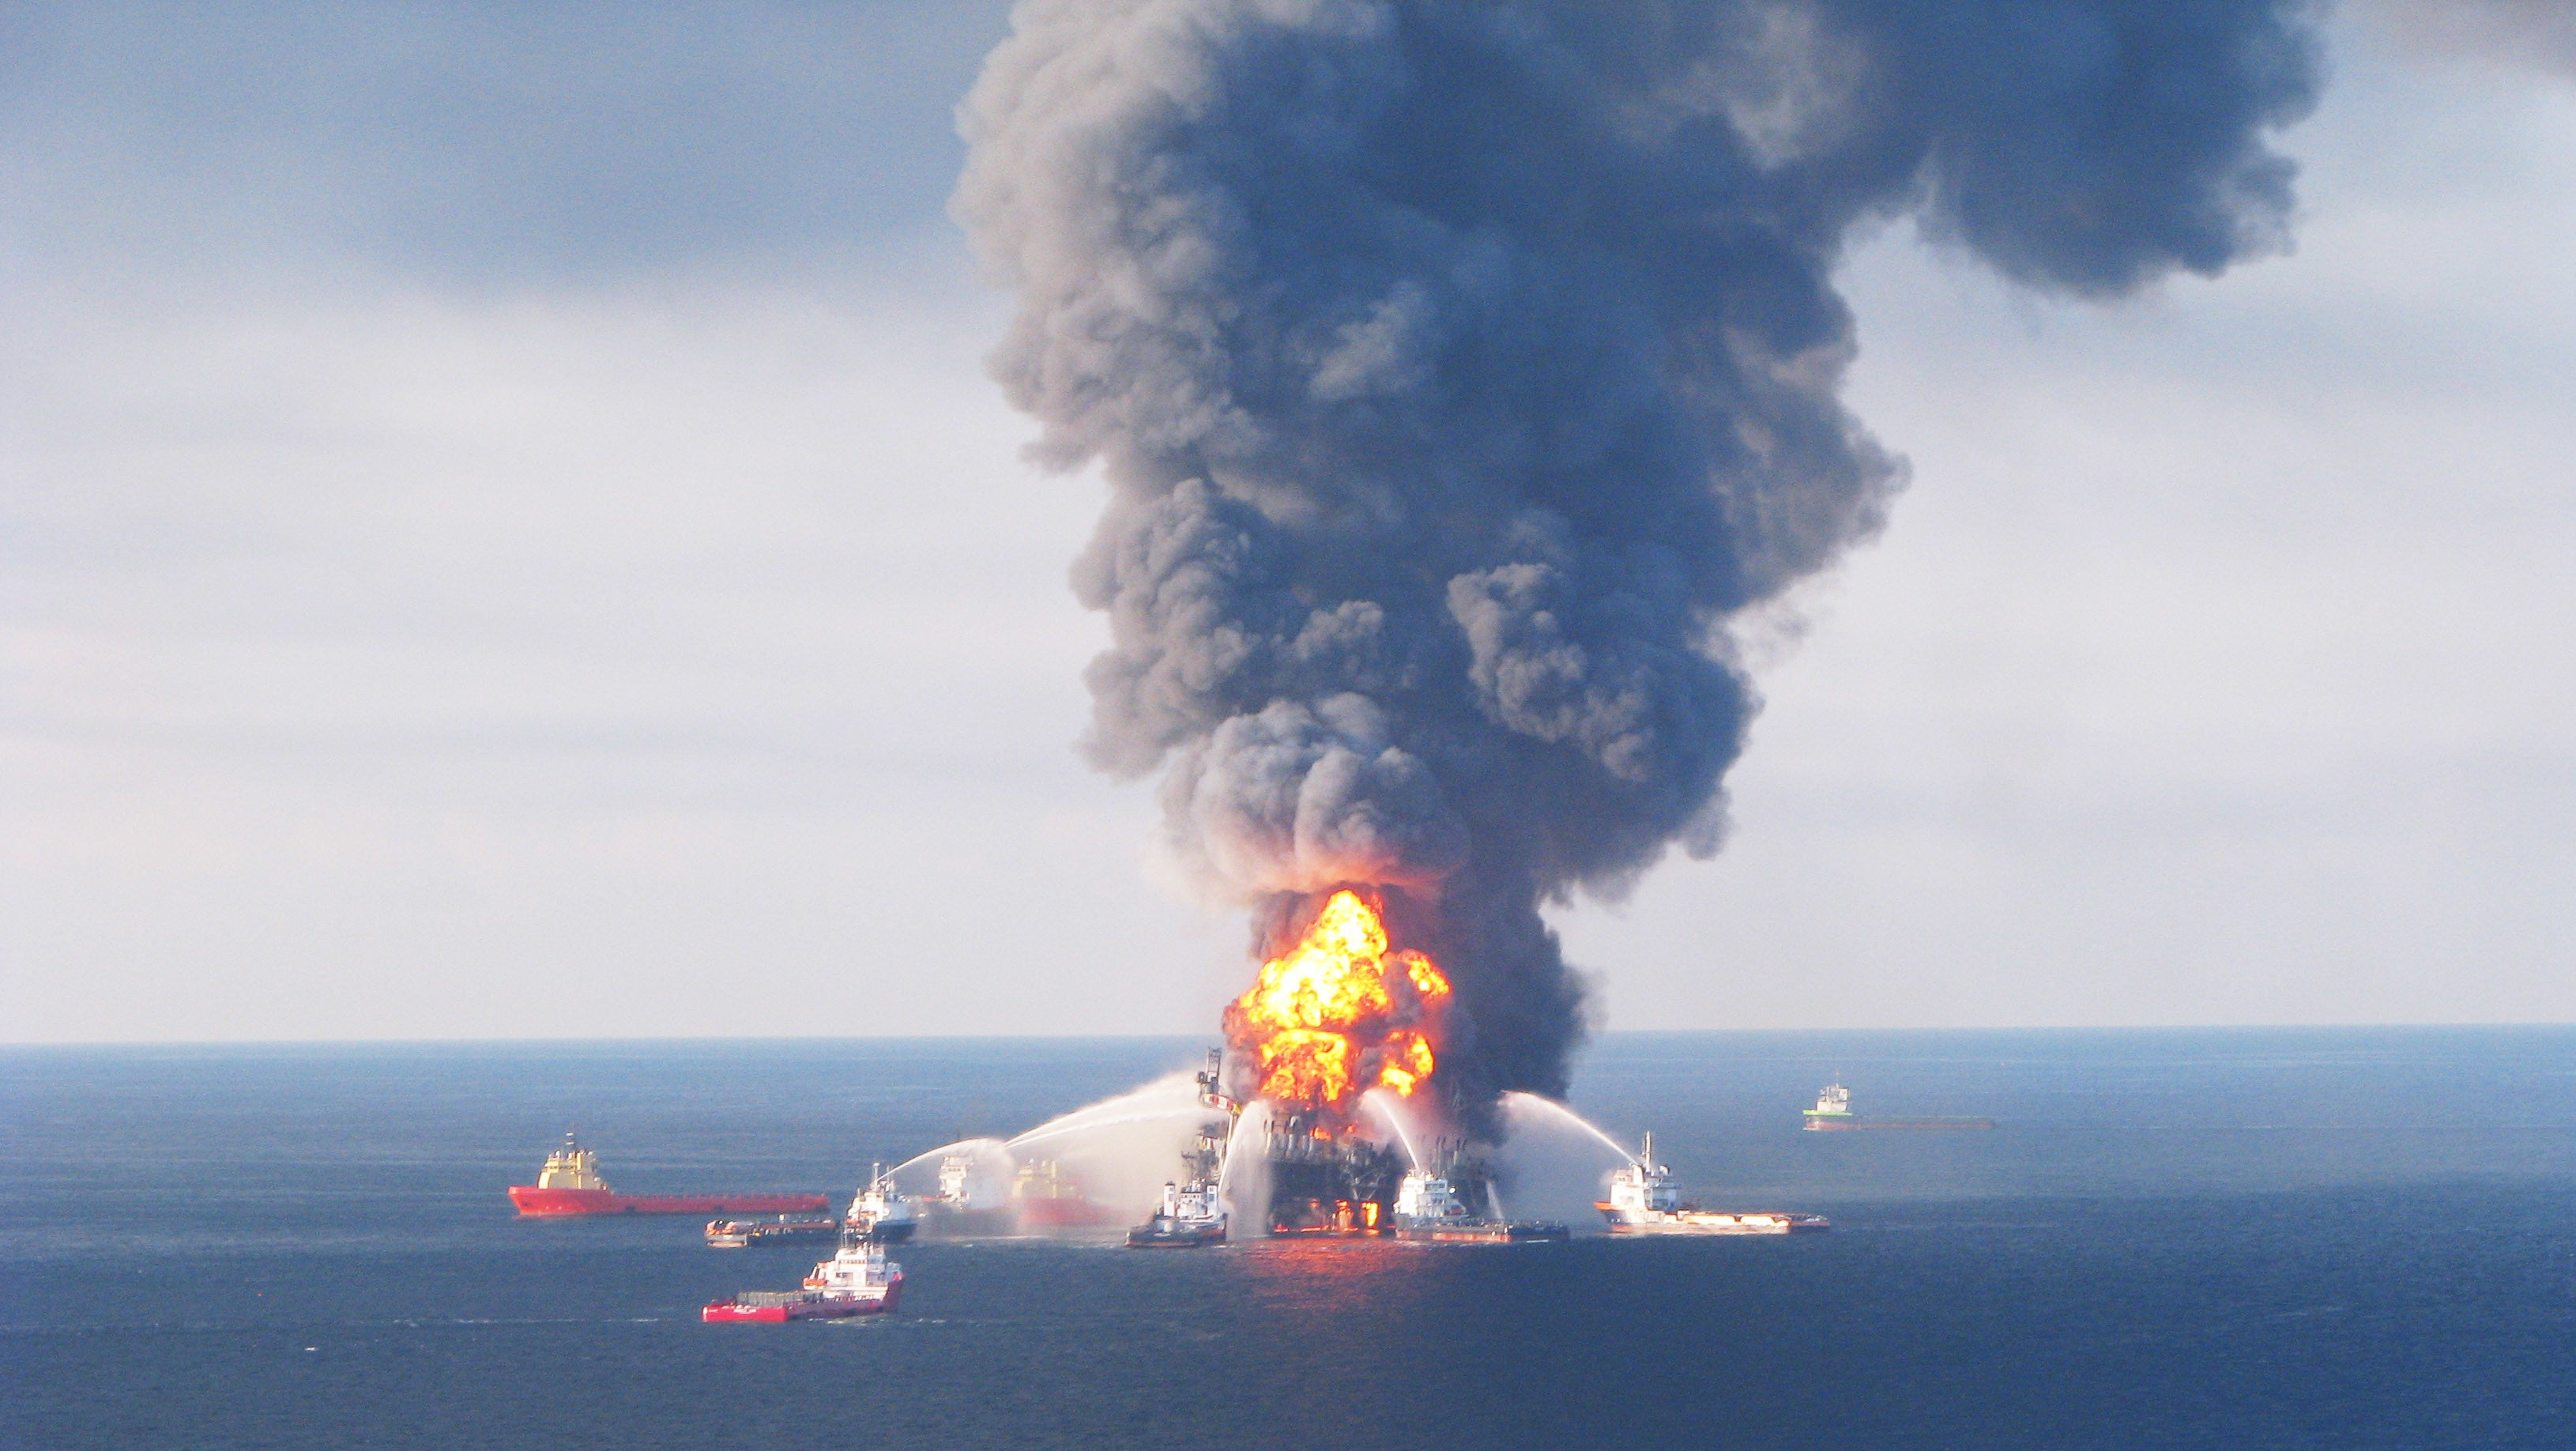 We're About To Lose One Of Our Best Tools To Study The BP Oil Spill's Fallout